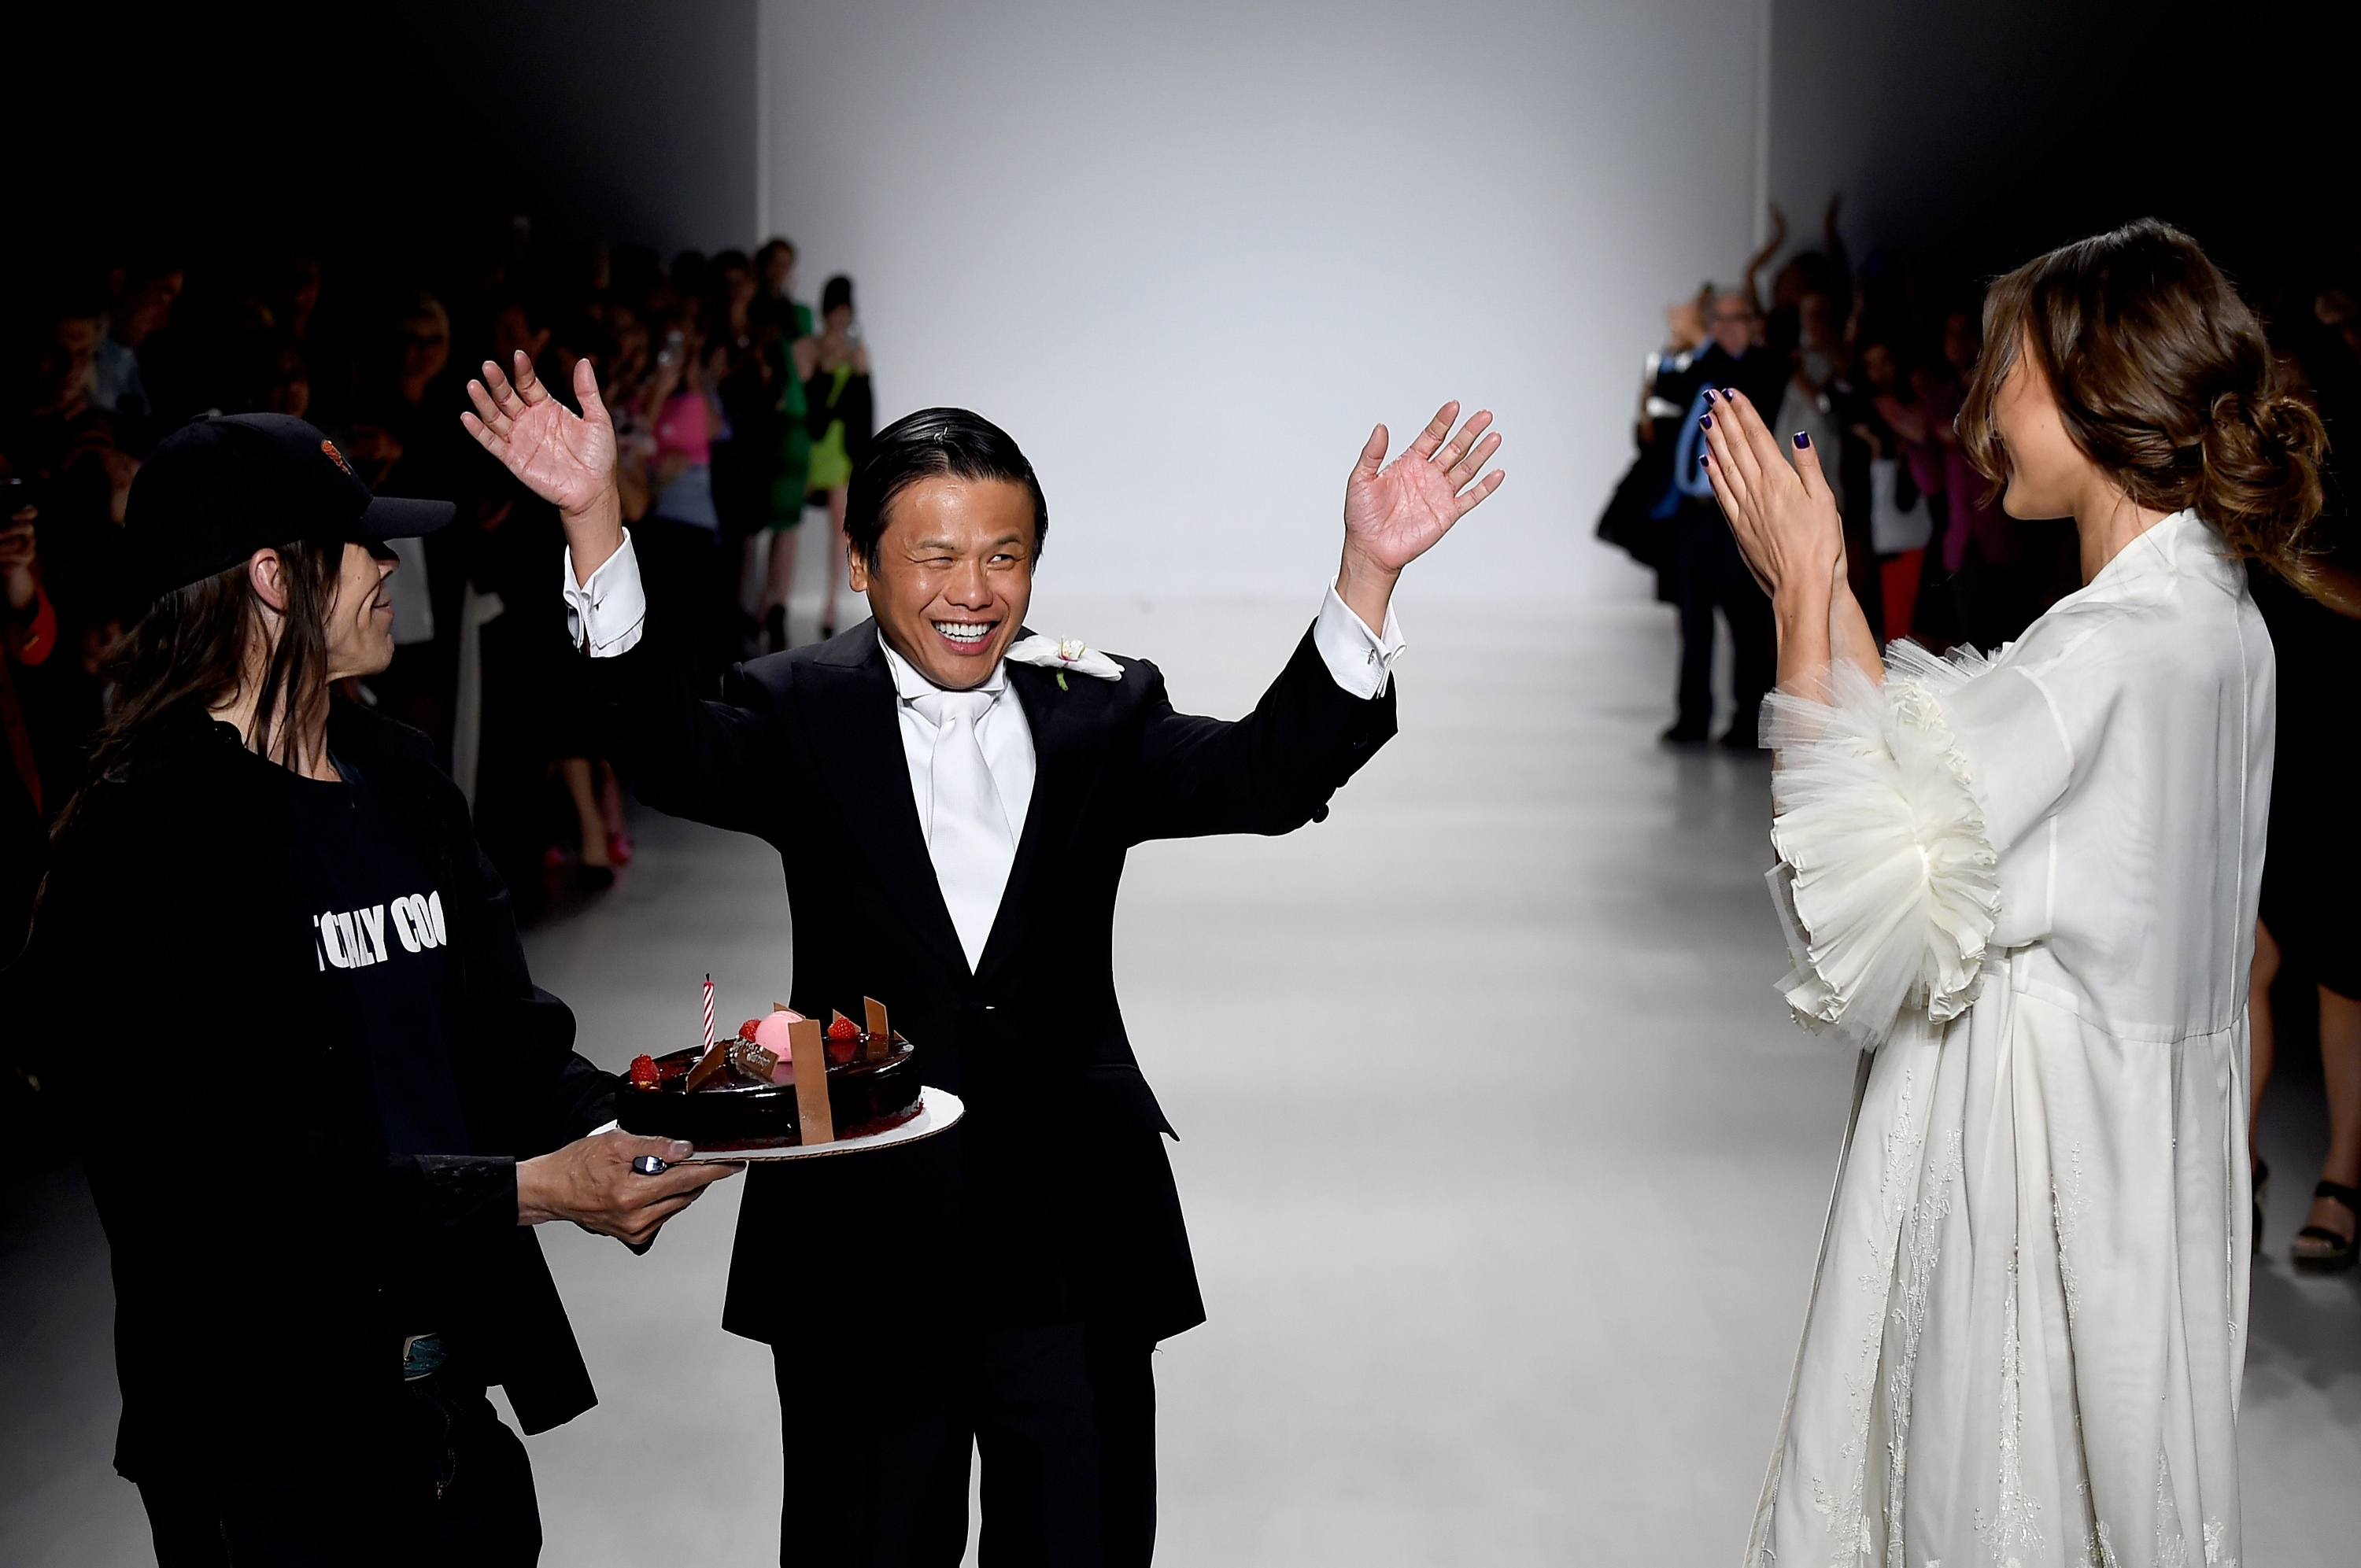 Zang Toi received an impromptu cake from the photographers to celebrate his 25th anniversary collection during Mercedes-Benz Fashion Week Spring 2015